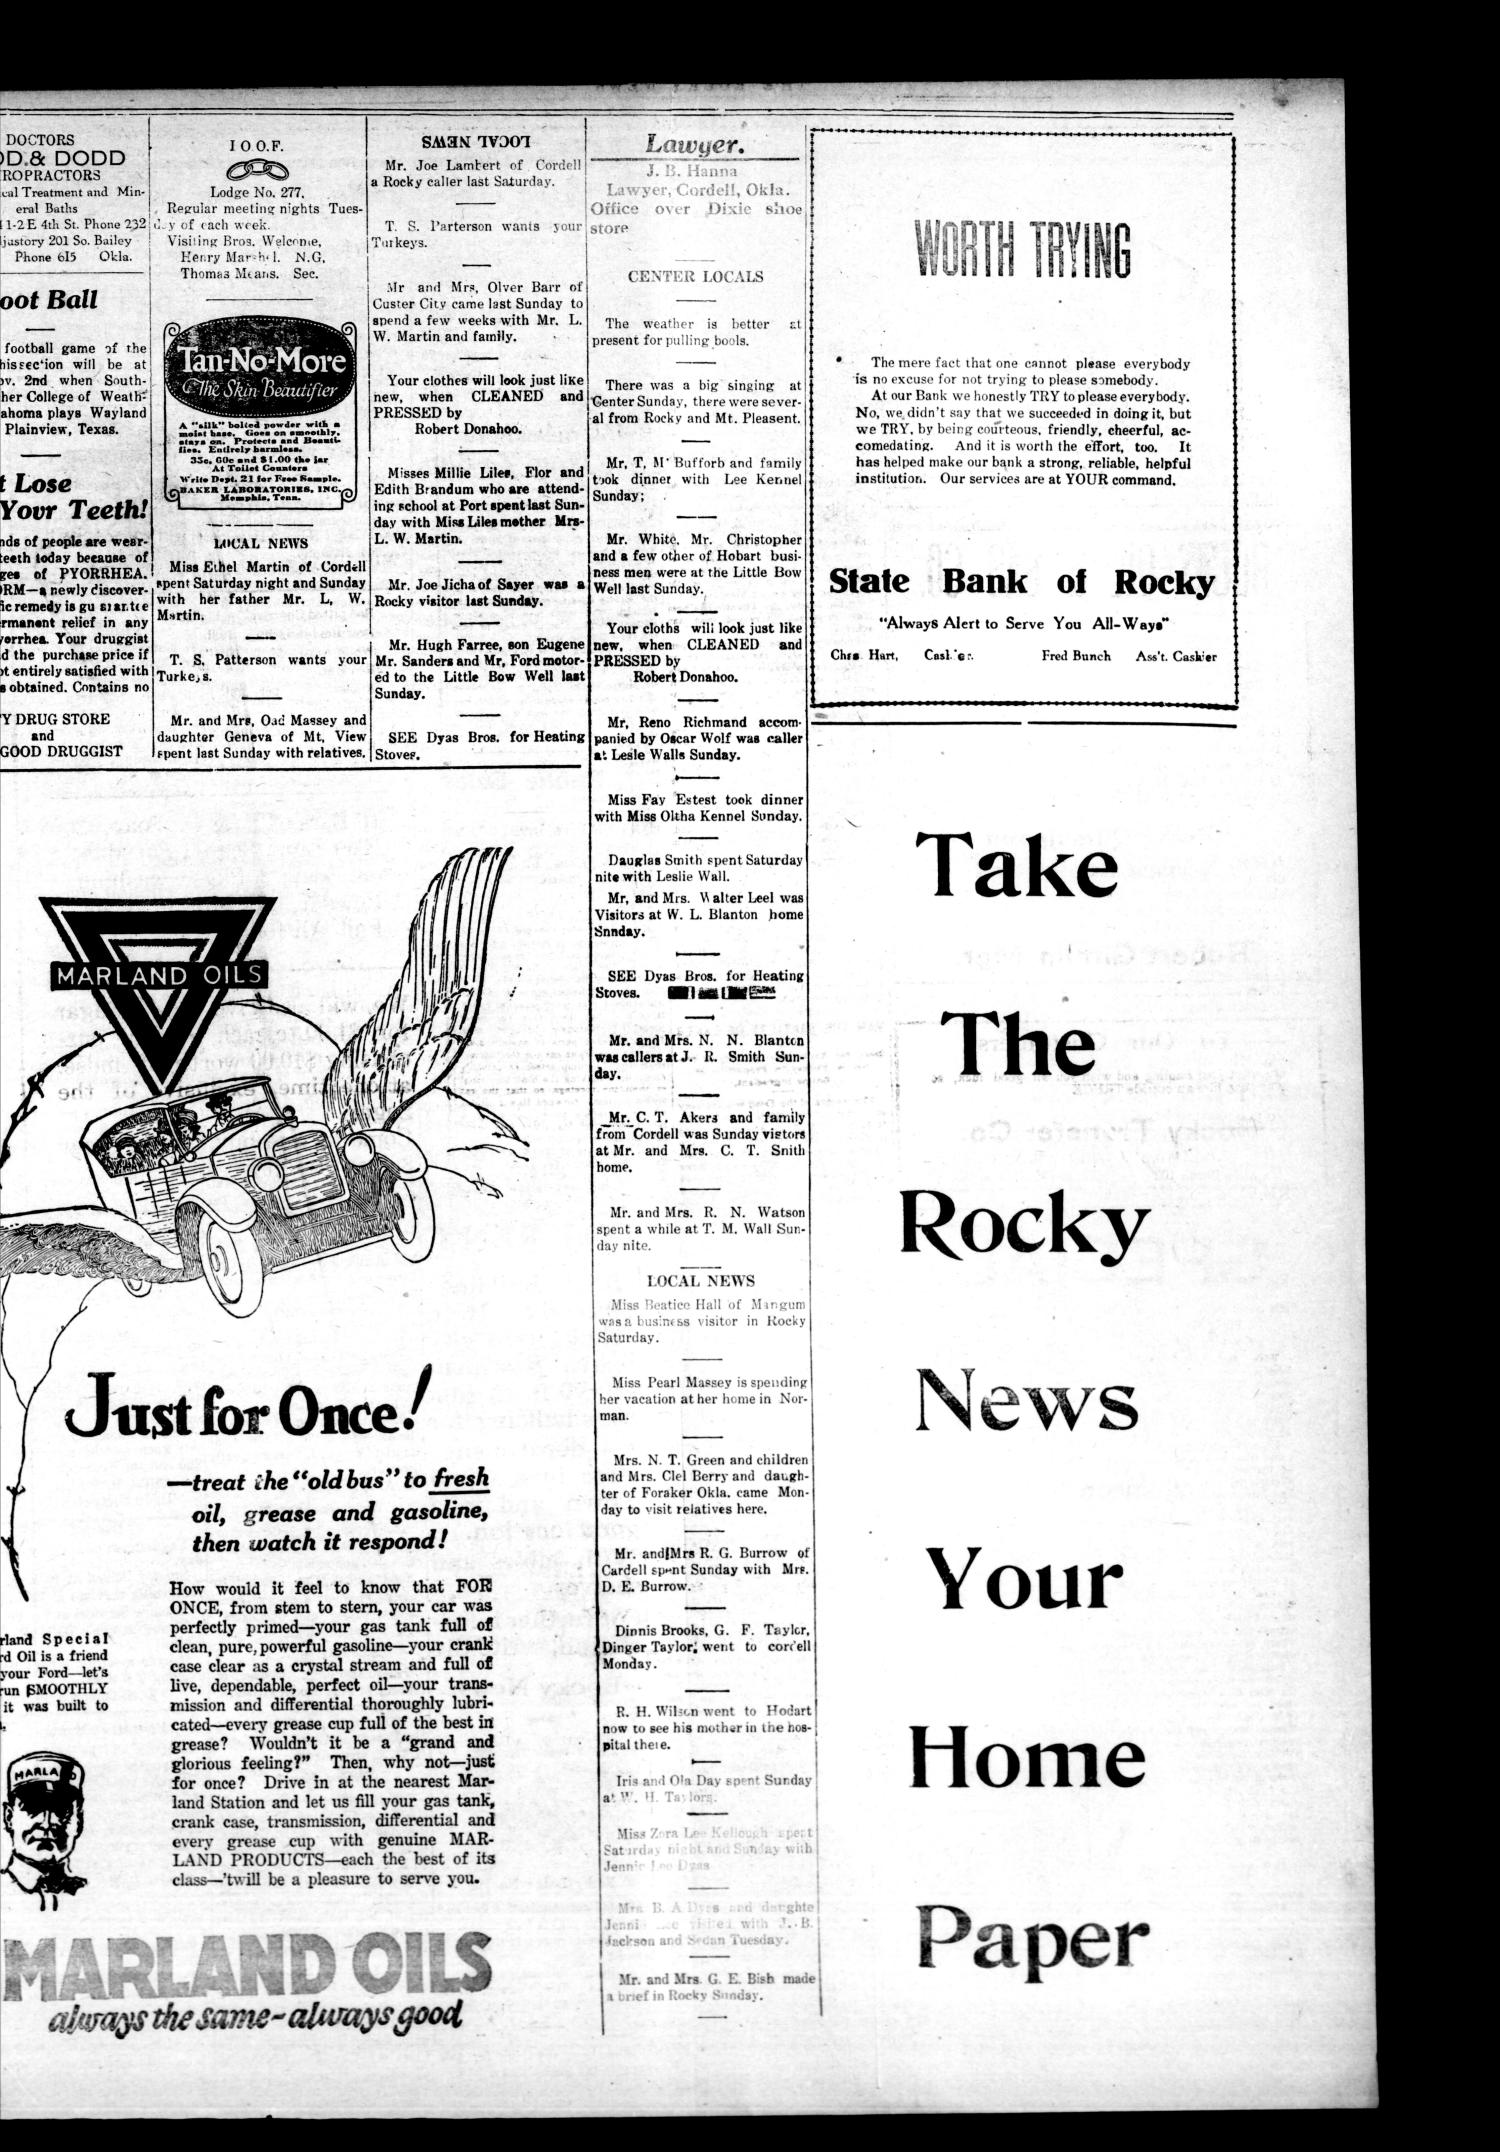 The Rocky News (Rocky, Okla.), Vol. 19, No. 17, Ed. 1 Thursday, October 25, 1923                                                                                                      [Sequence #]: 3 of 4